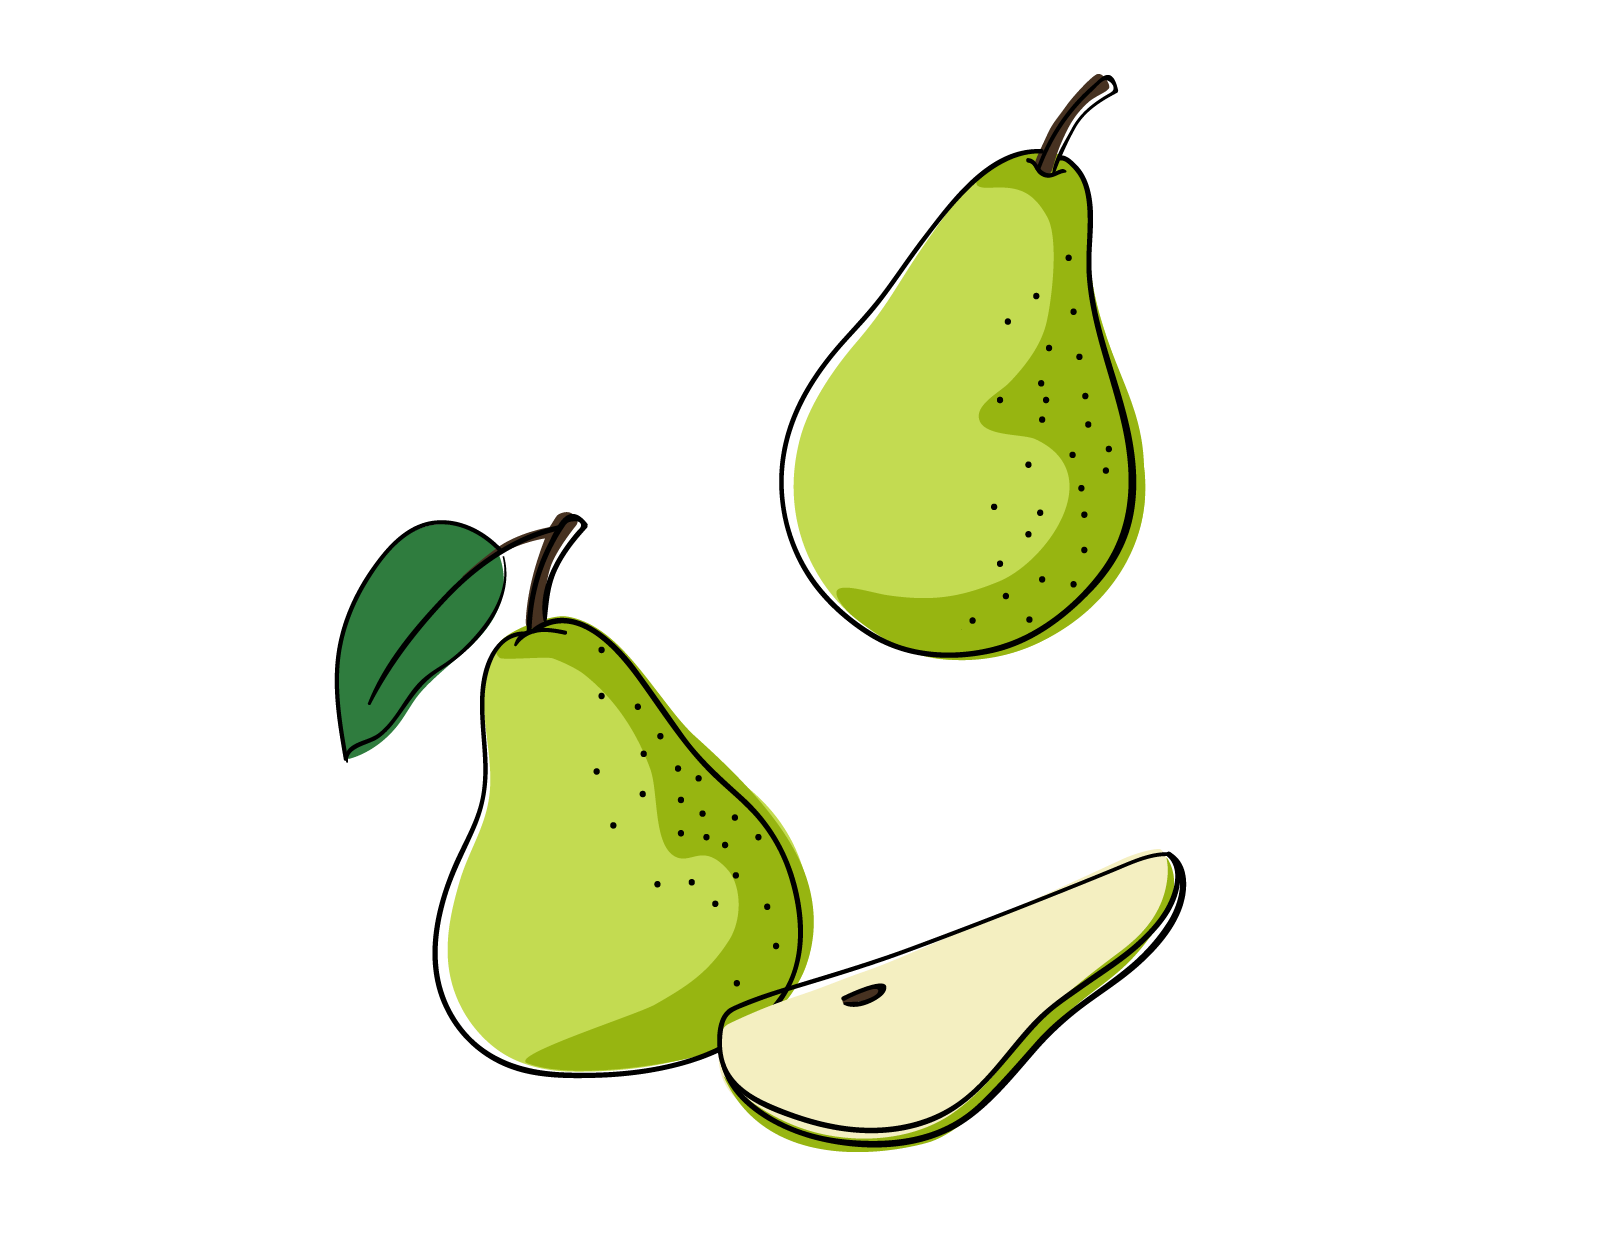 pears-06.png